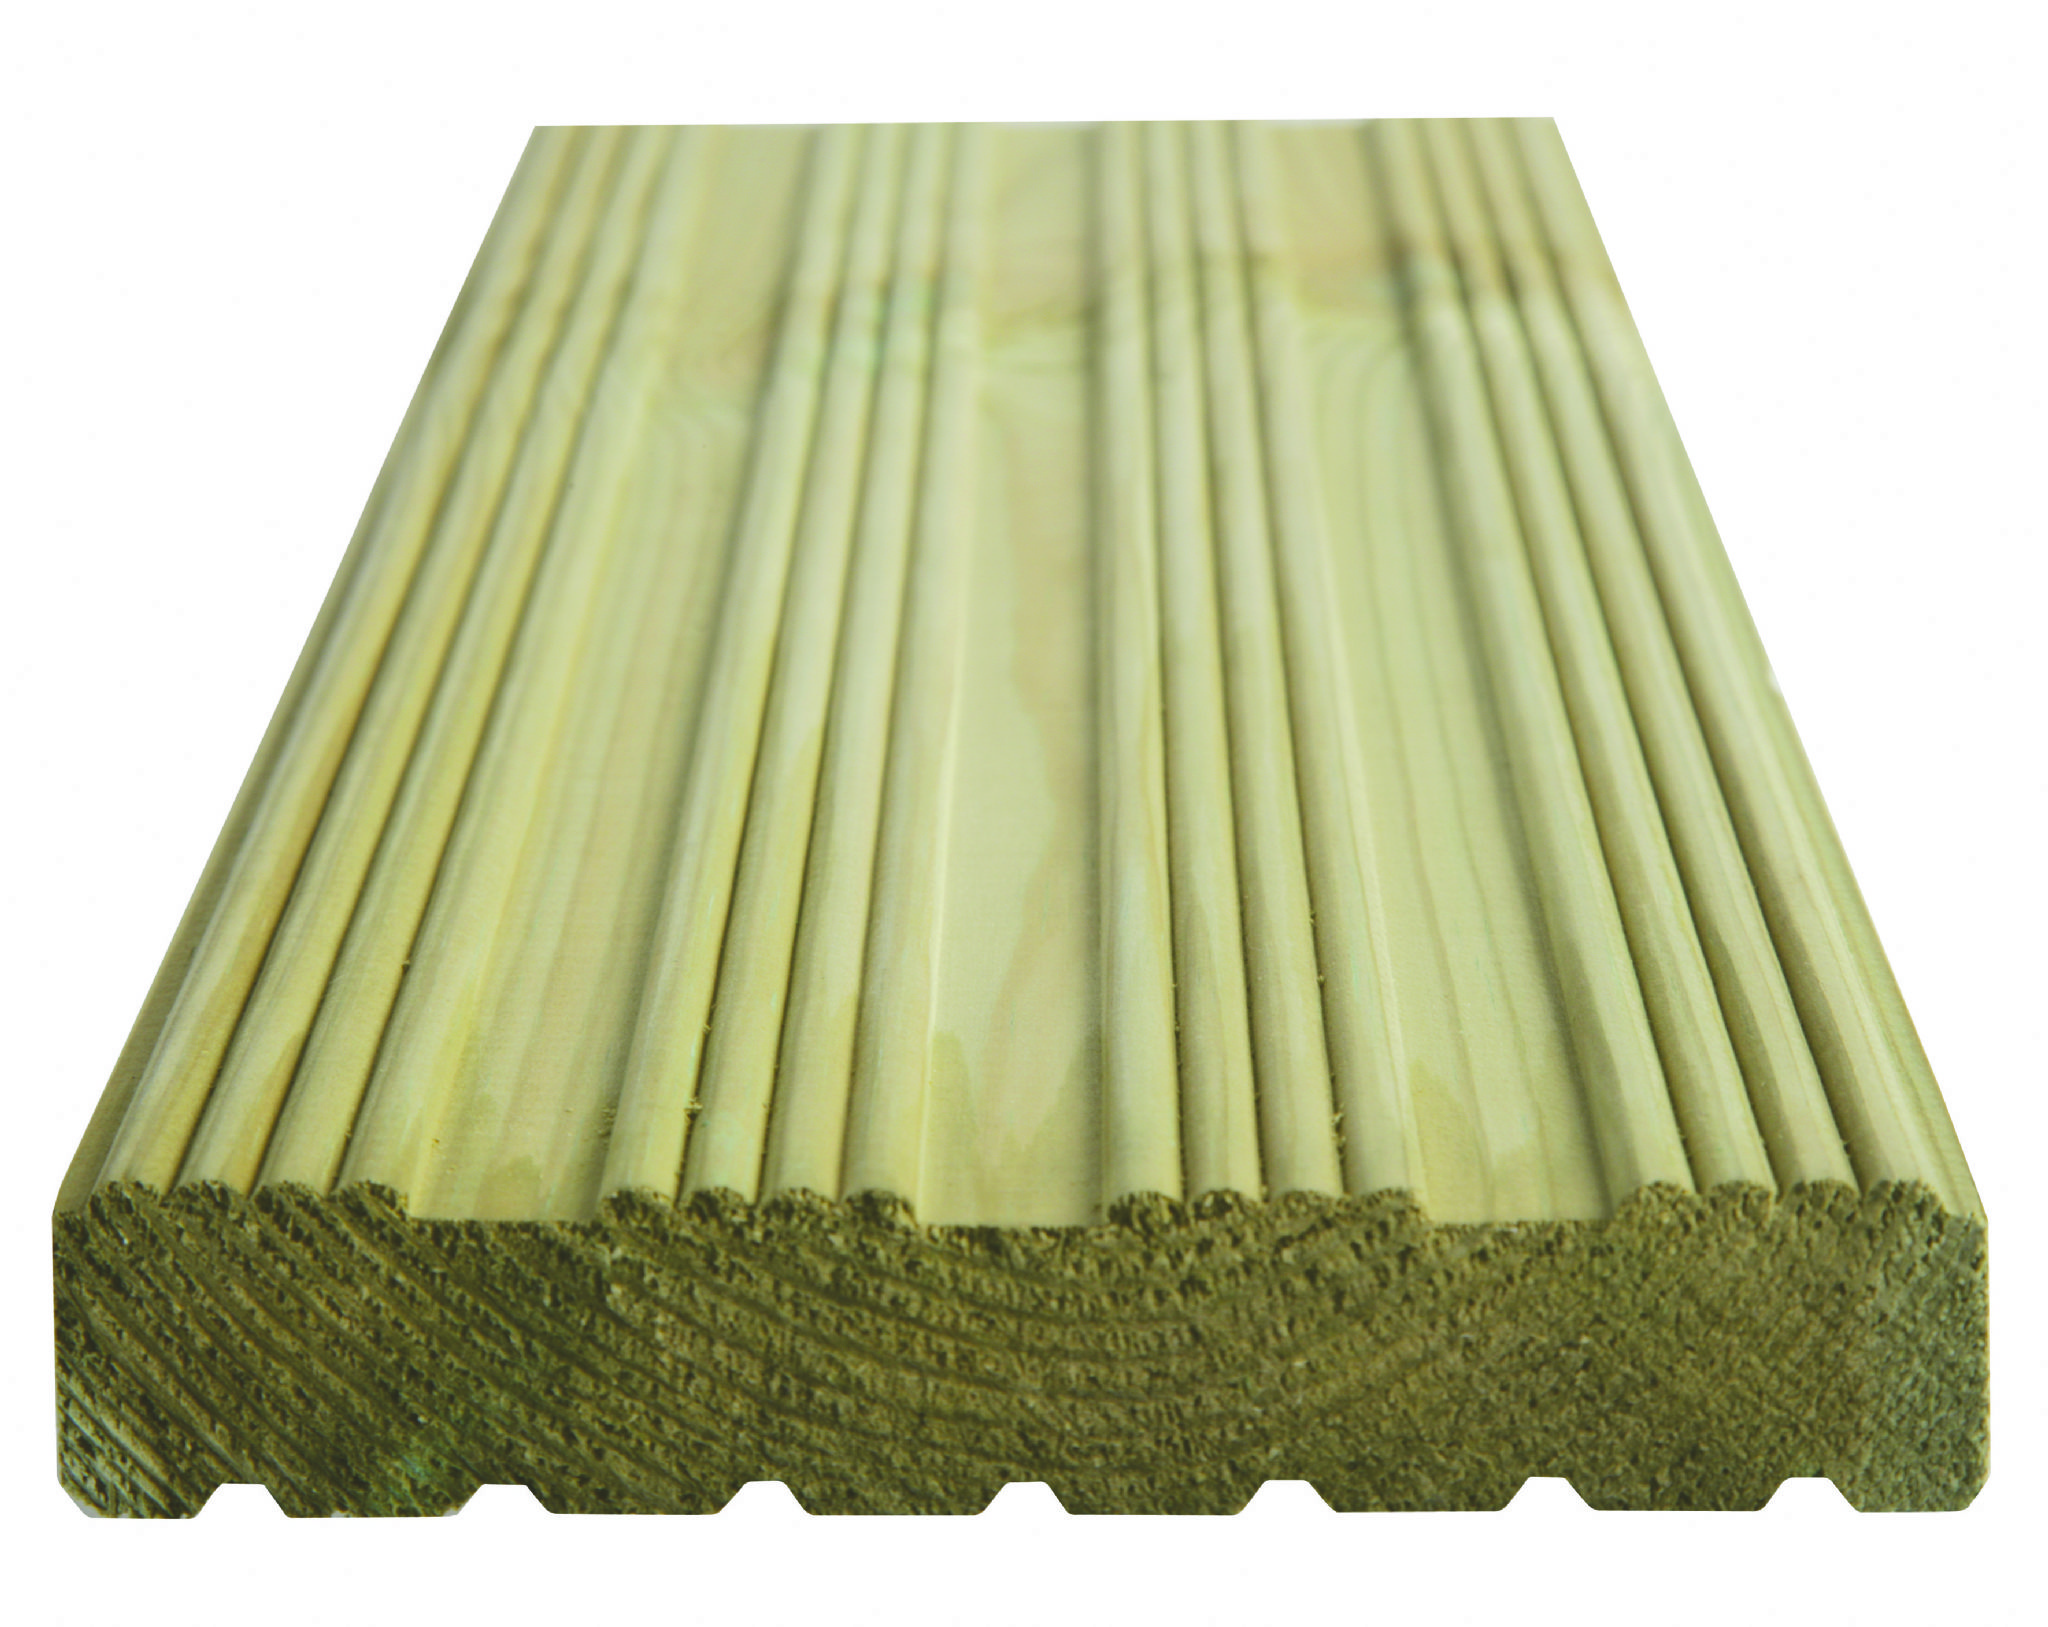 Arbordeck decking 4 8 m long for Non wood decking boards